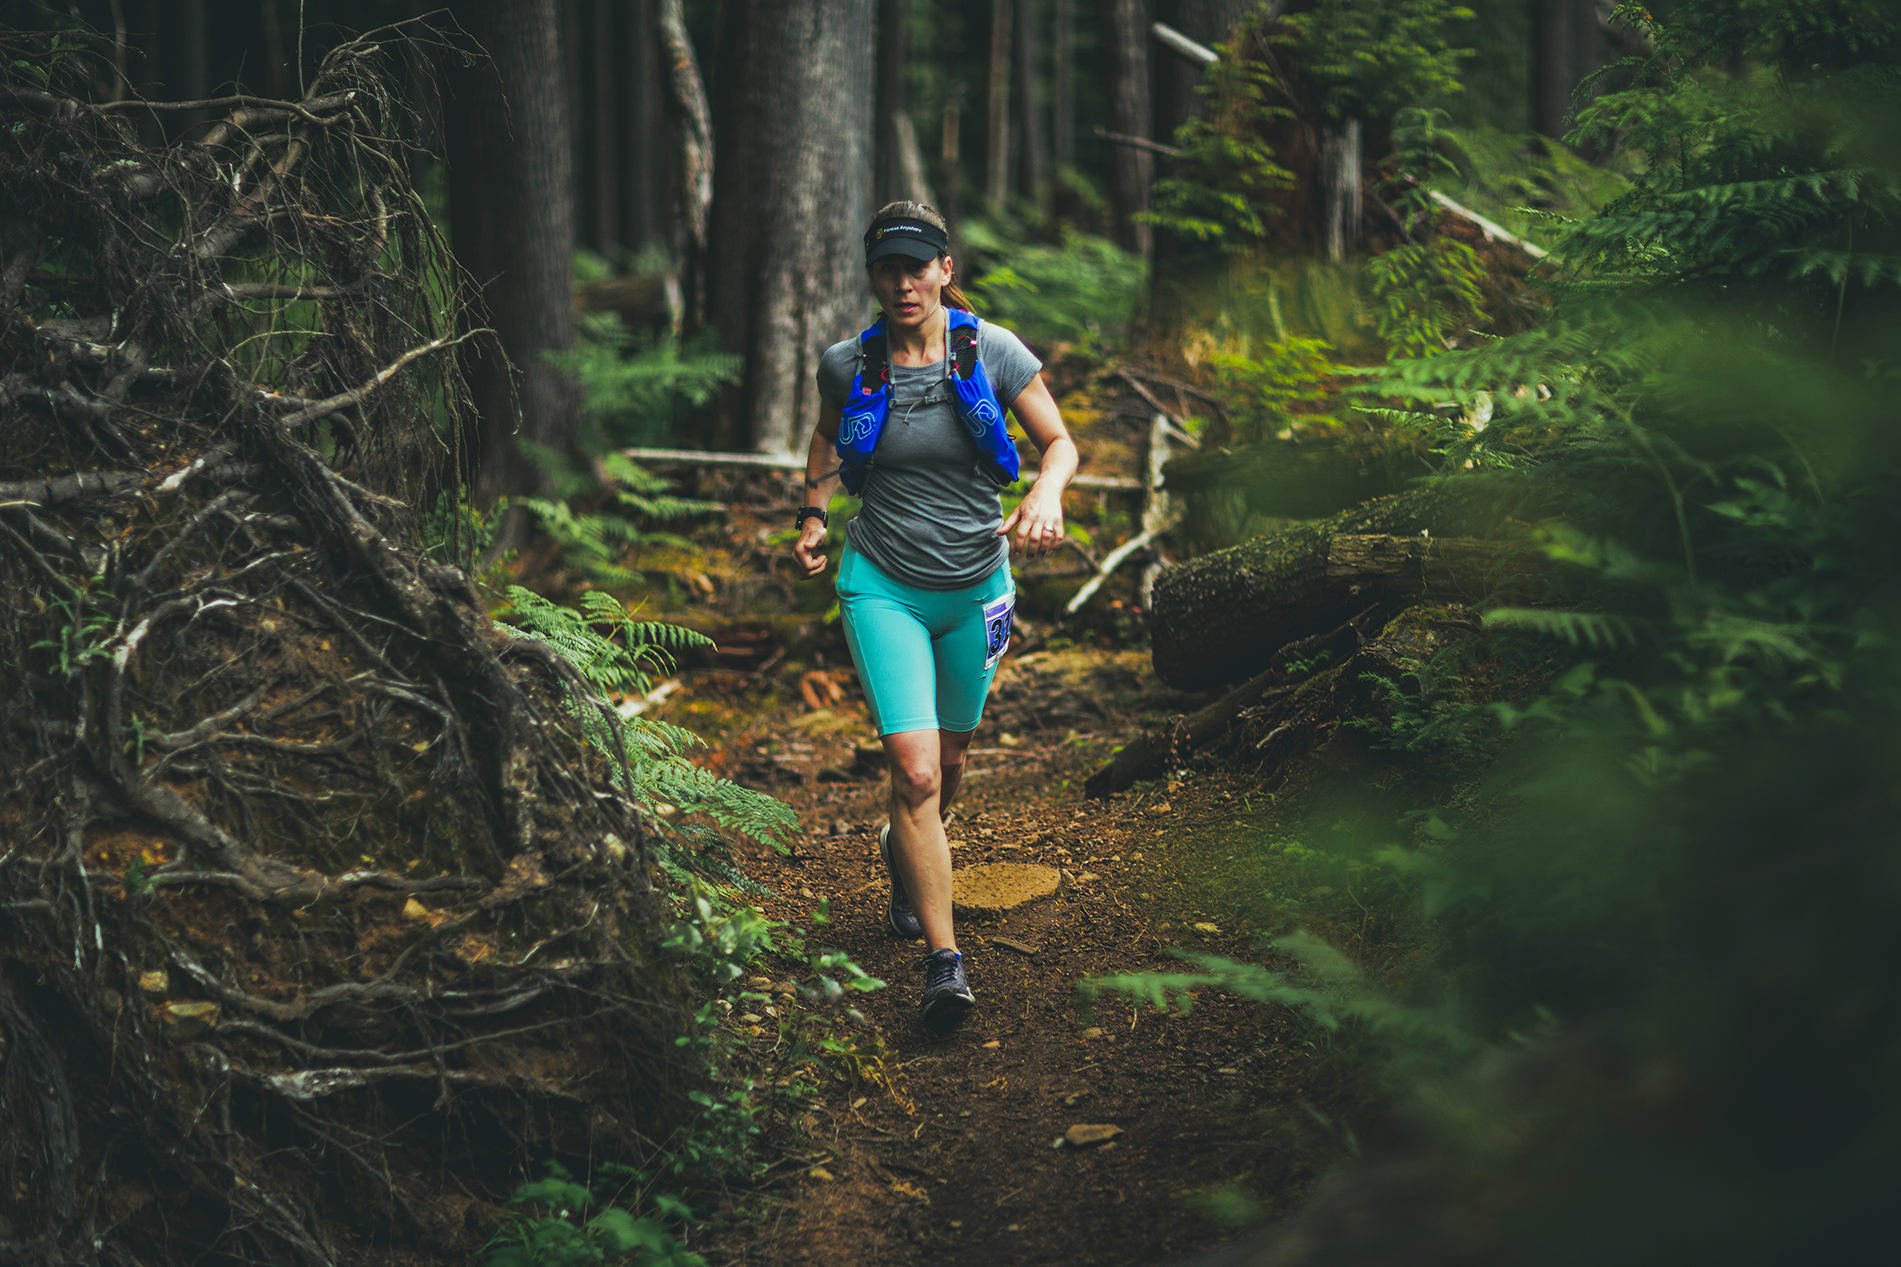 Fraser Valley Trail Races - Bear Mountain - IMG_2457 by Brice Ferre Studio - Vancouver Portrait Adventure and Athlete Photographer.jpg